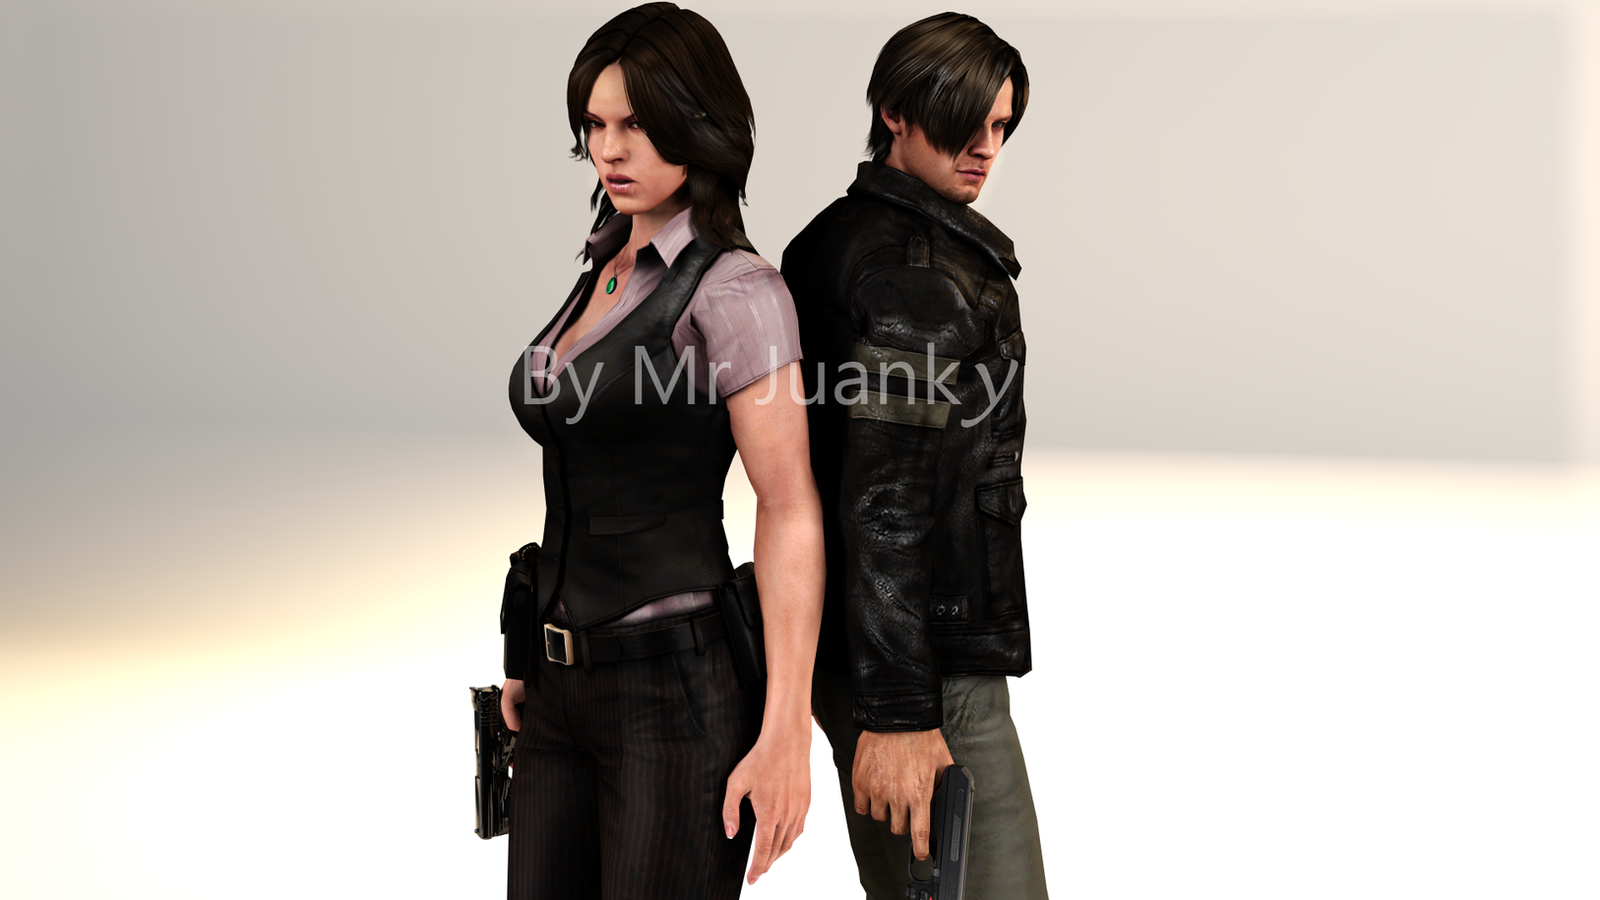 Leon s kennedy and helena harper by mr juanky on deviantart